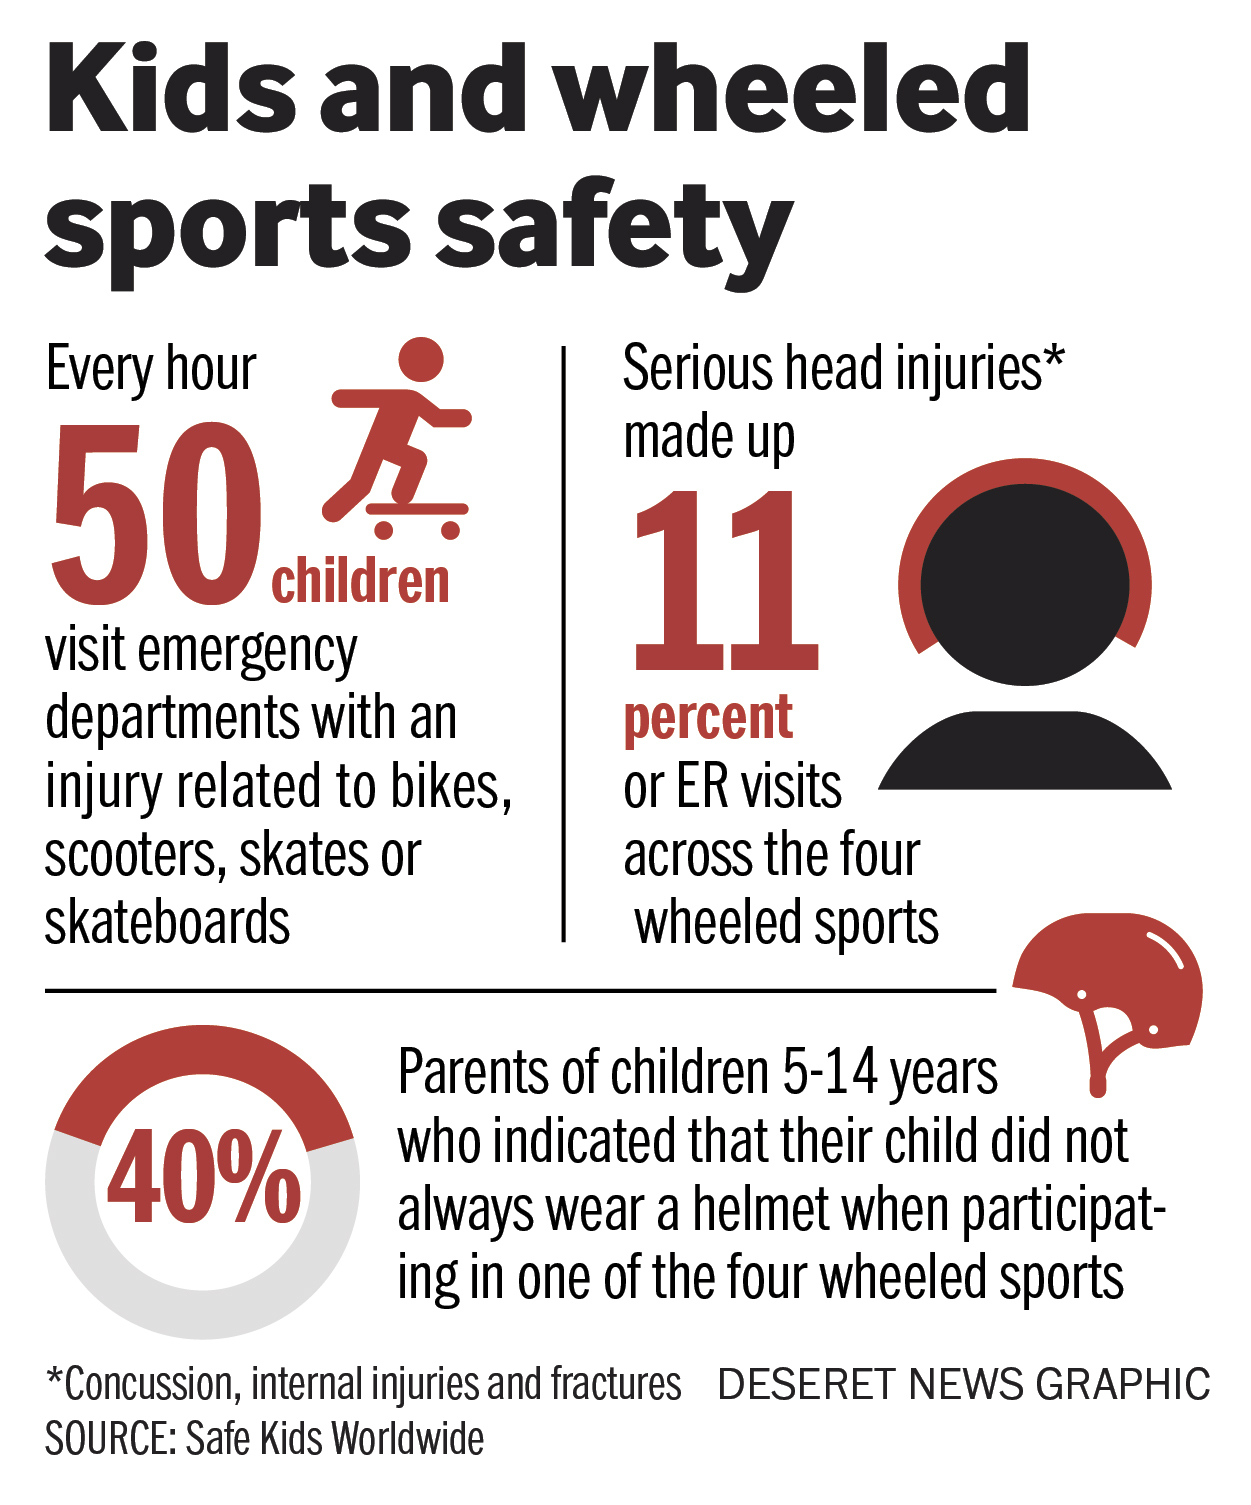 Four In 10 Kids, Ages 514, Don't Wear Helmets Each Time They Do The Four  Wheeled Sports, According To The Safe Kidsanization